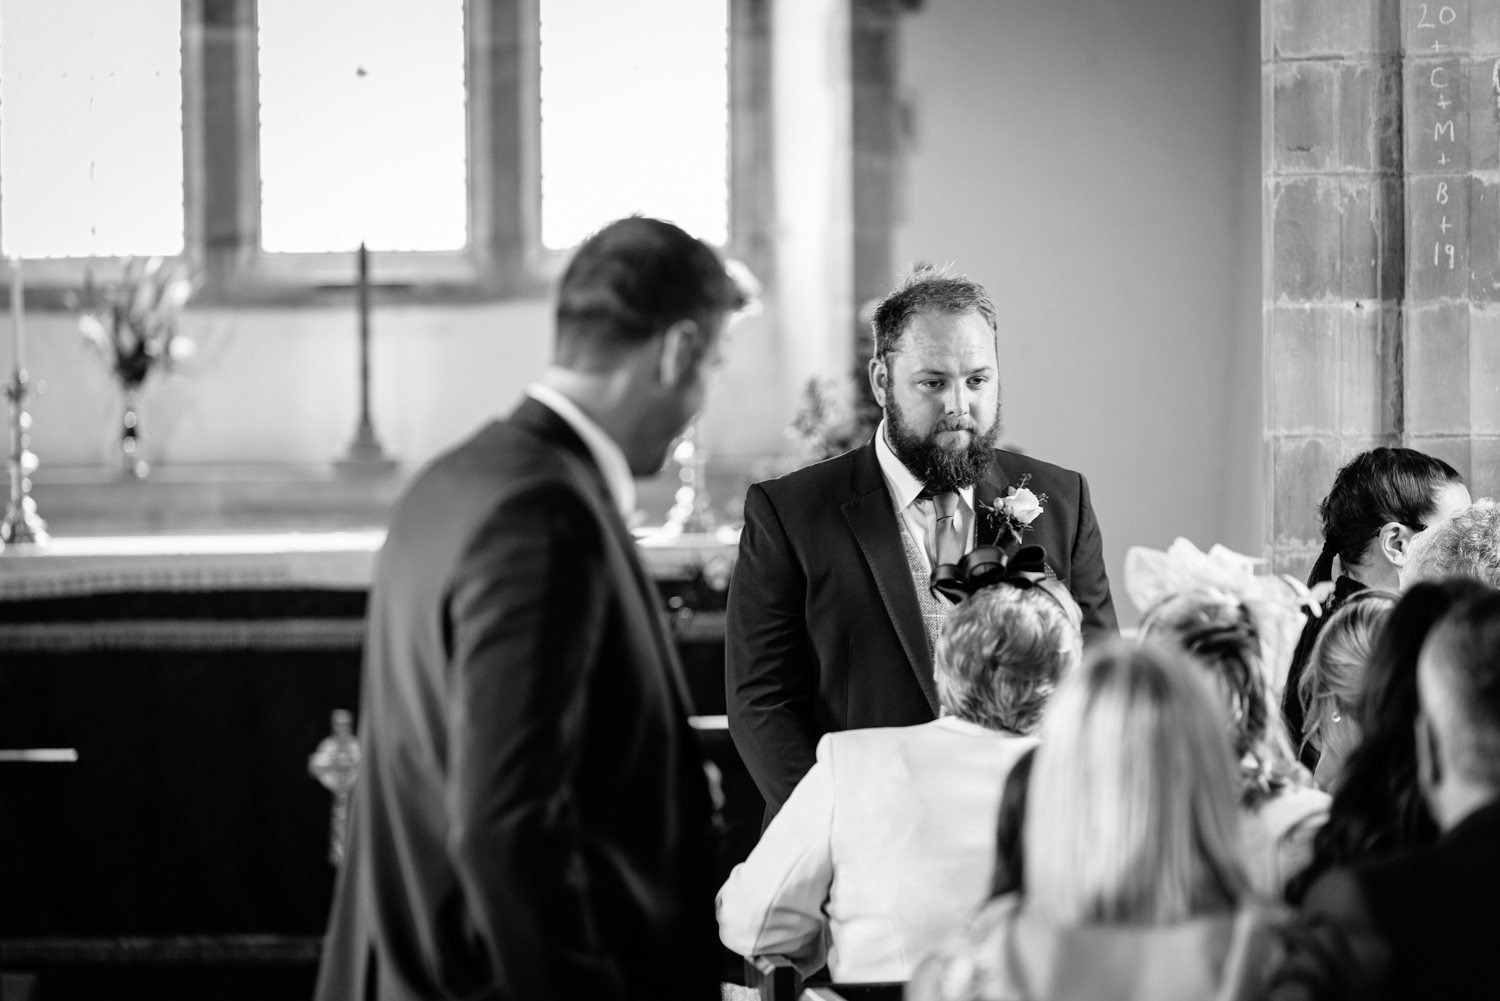 Groom stood at front of church